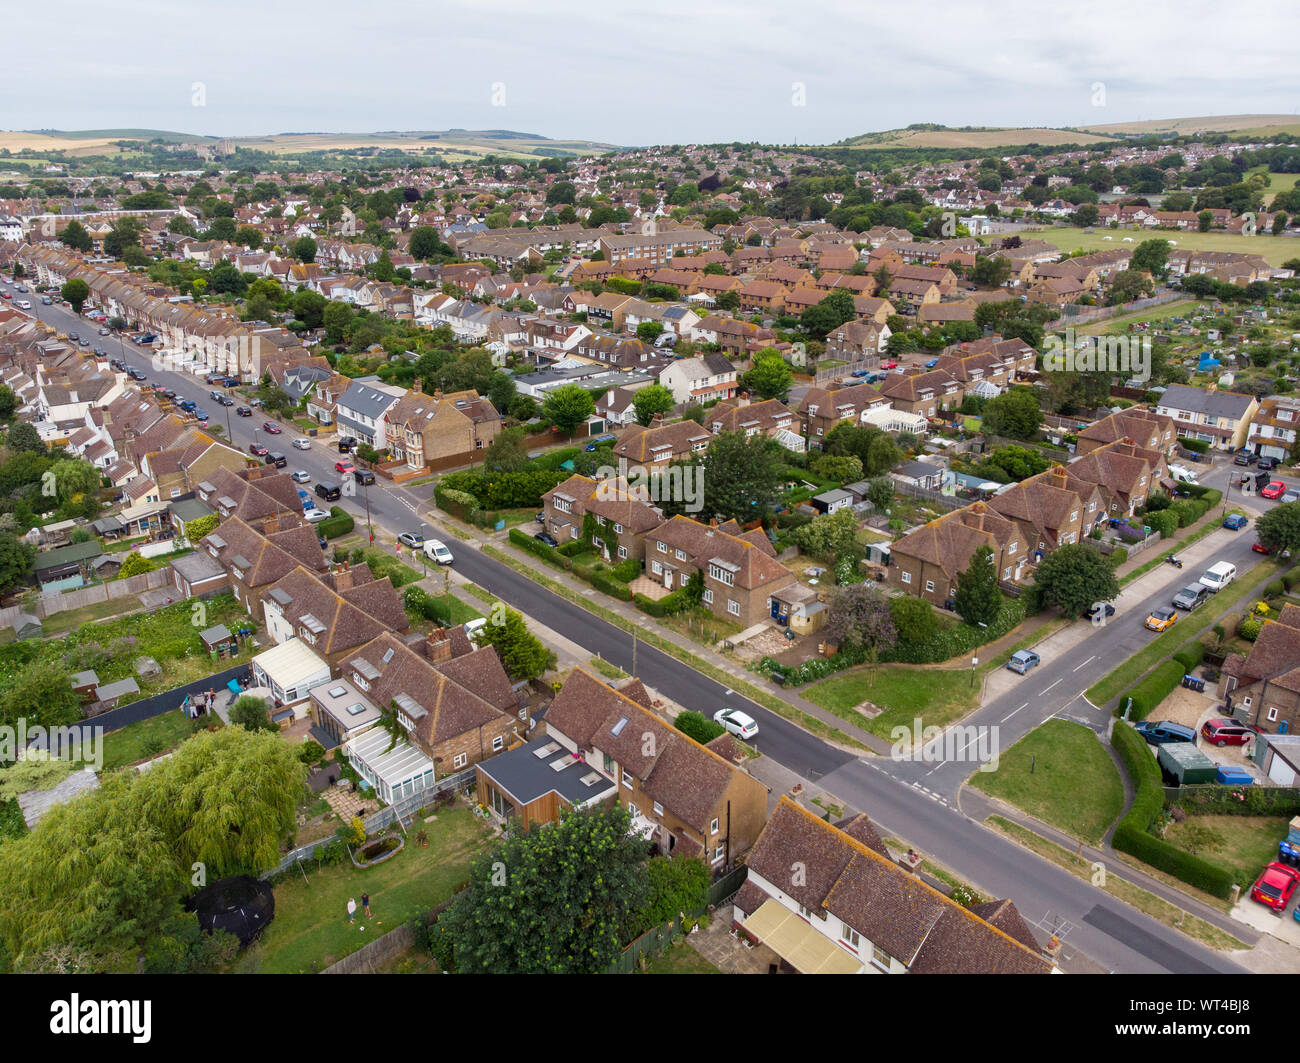 Aerial photo of the town of Shoreham-by-Sea, a seaside town and port in West Sussex, England UK, showing typical housing estates and businesses taken Stock Photo